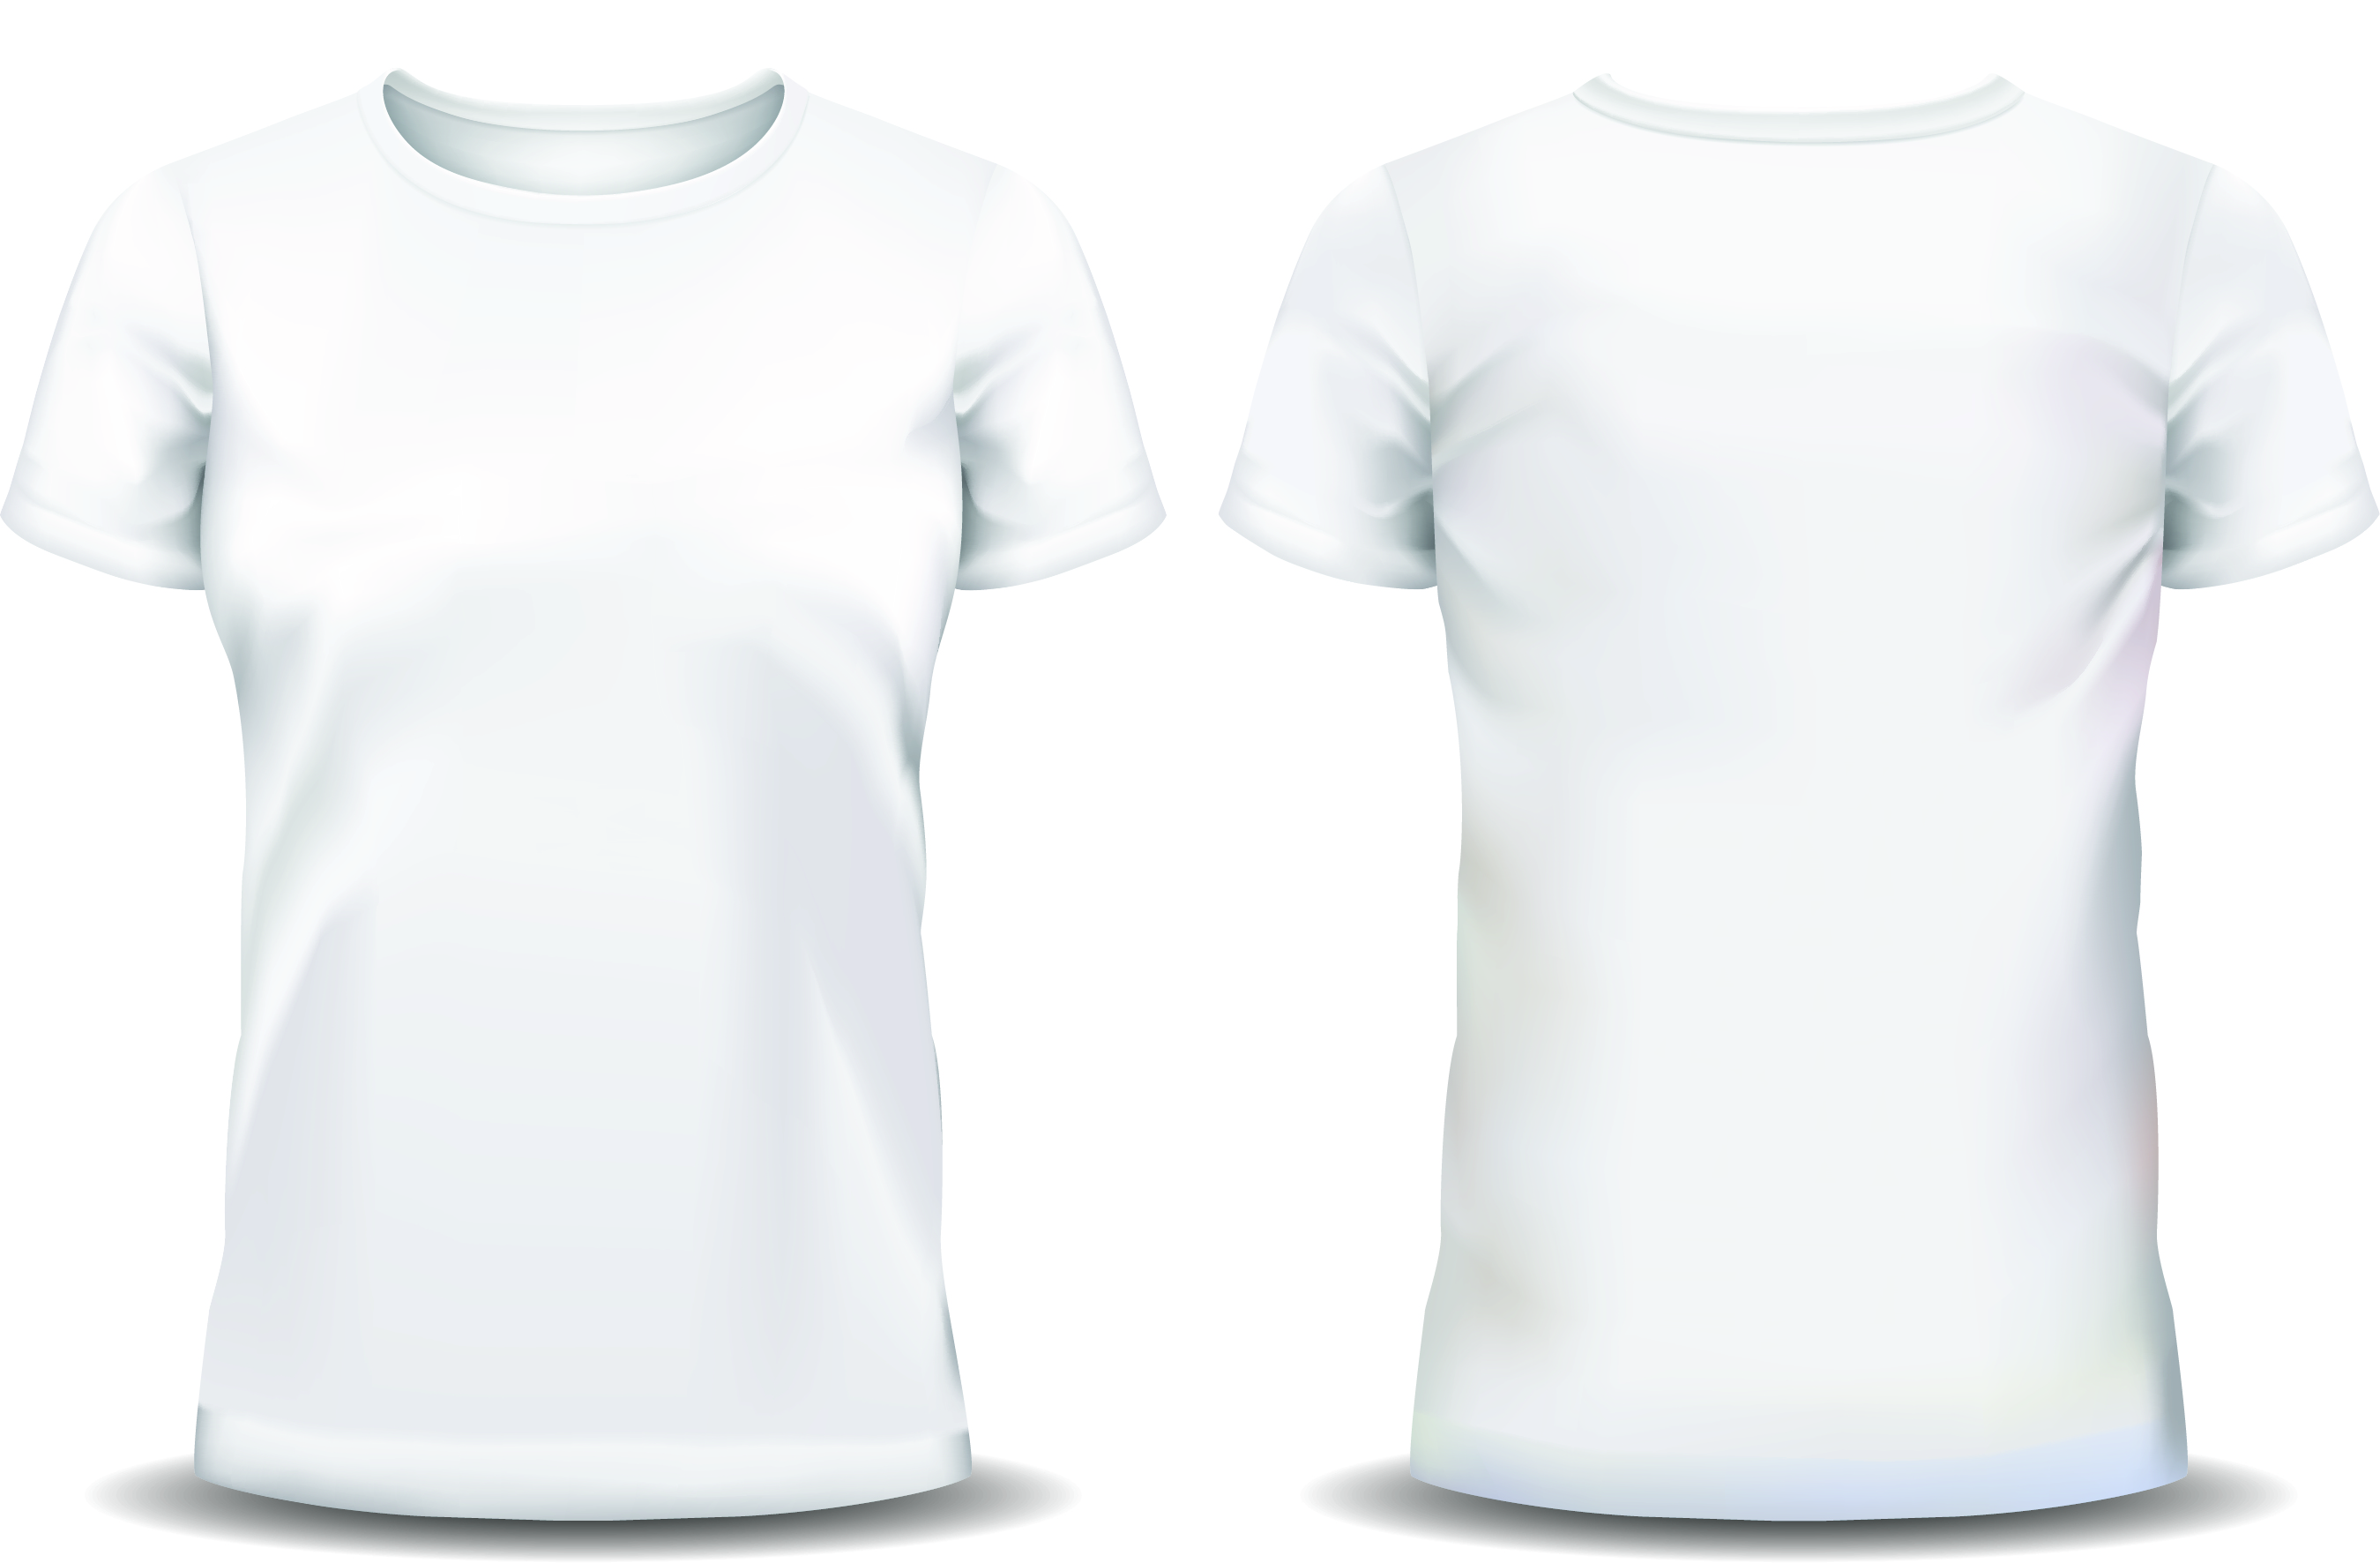 White t shirt eps - Blank White T Shirt Eps